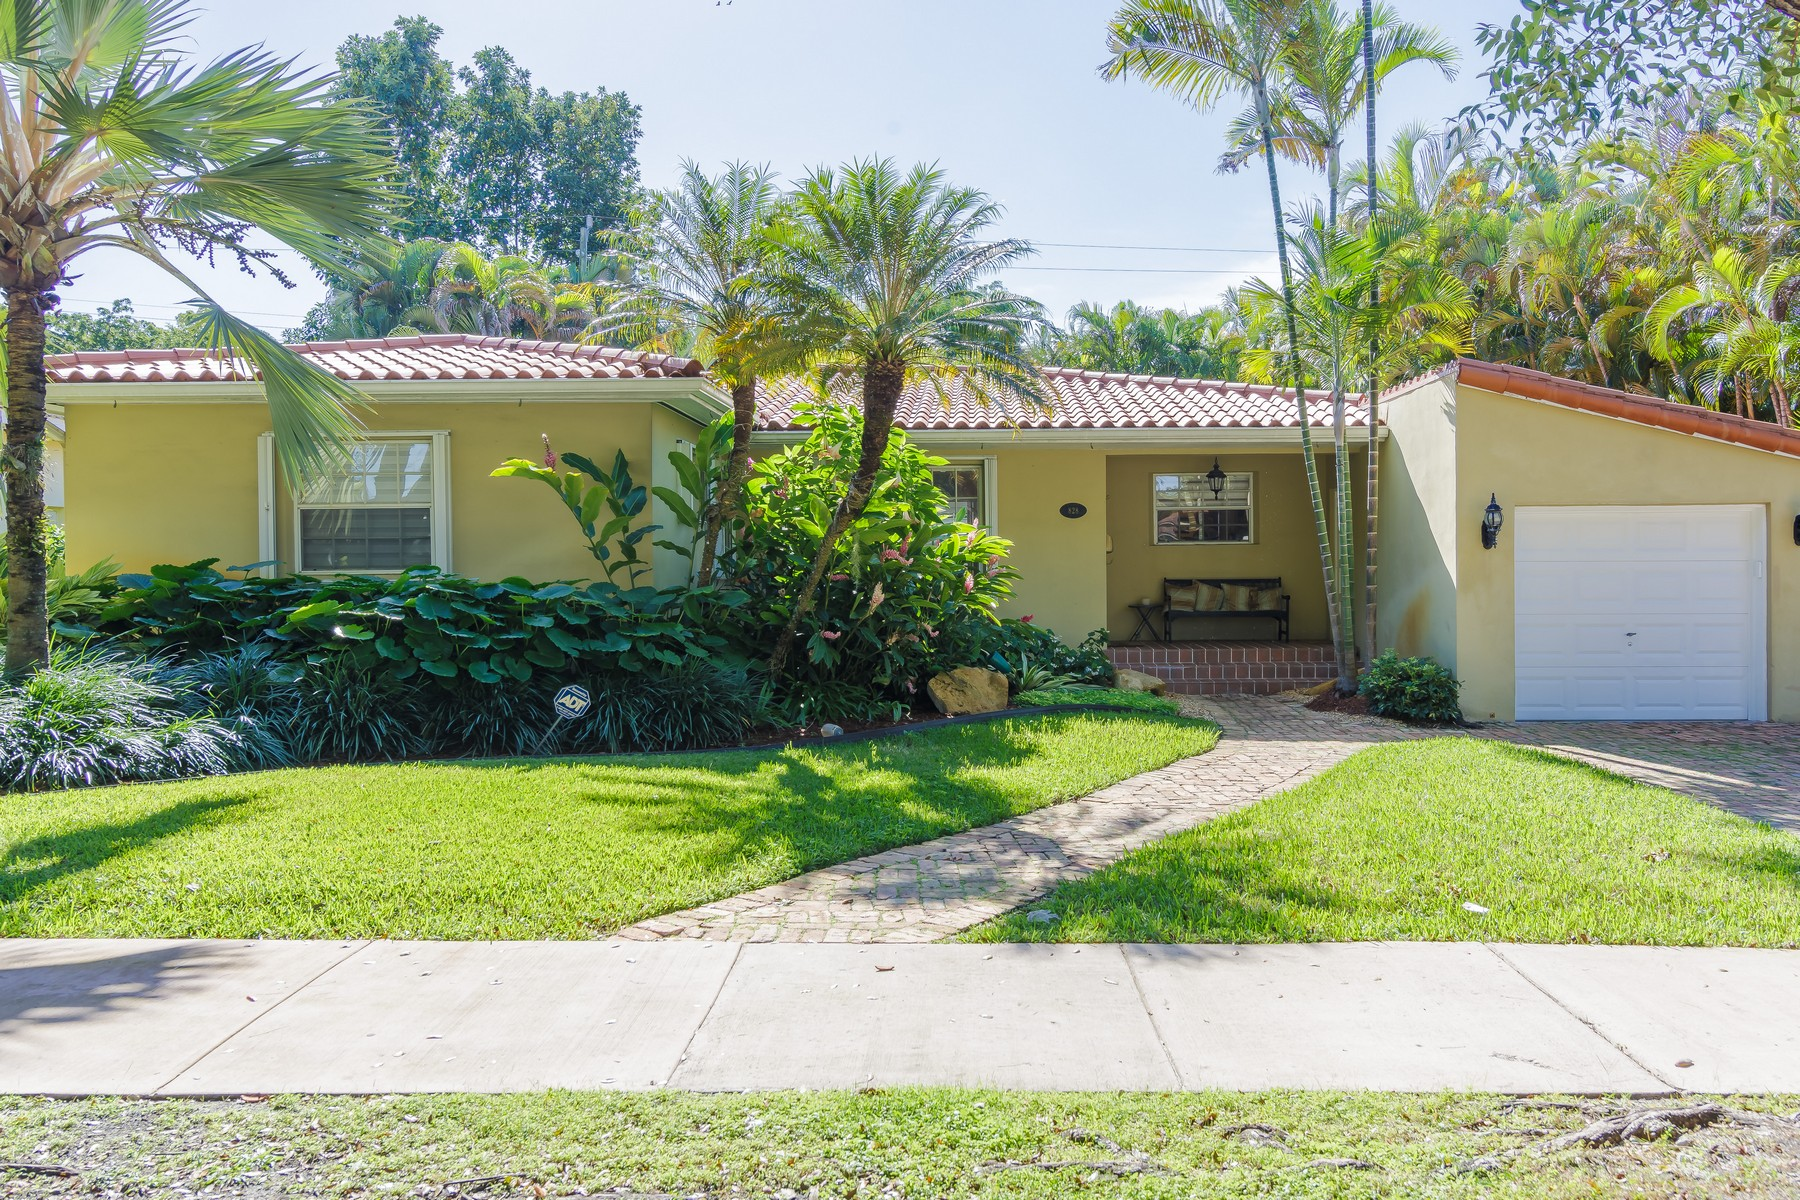 Single Family Home for Sale at 828 Mariana Ave Coral Gables, Florida, 33134 United States